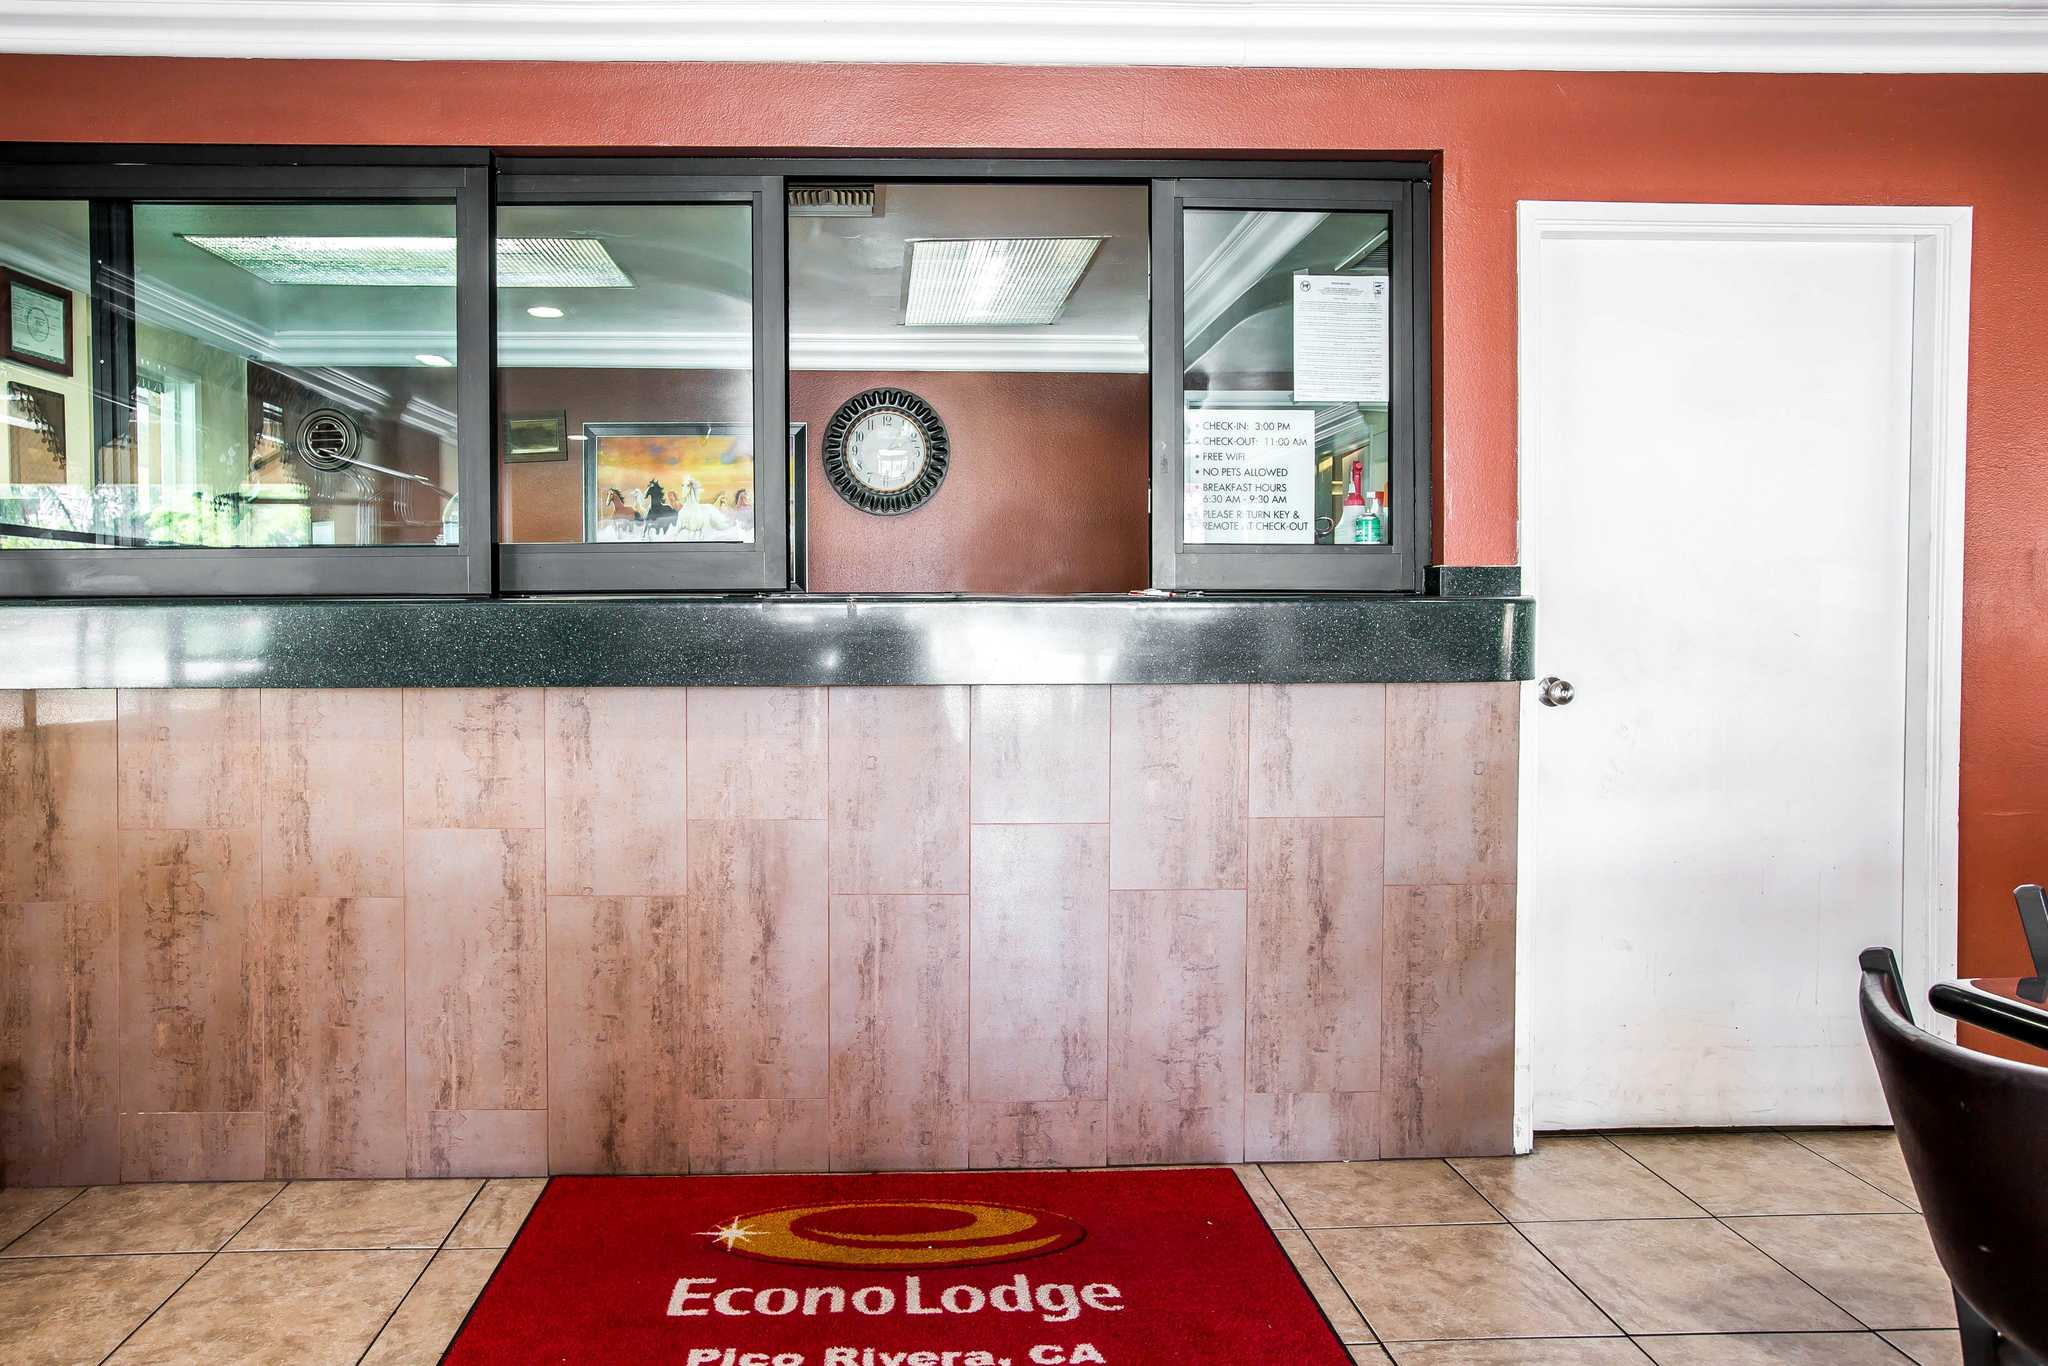 Econo Lodge image 17